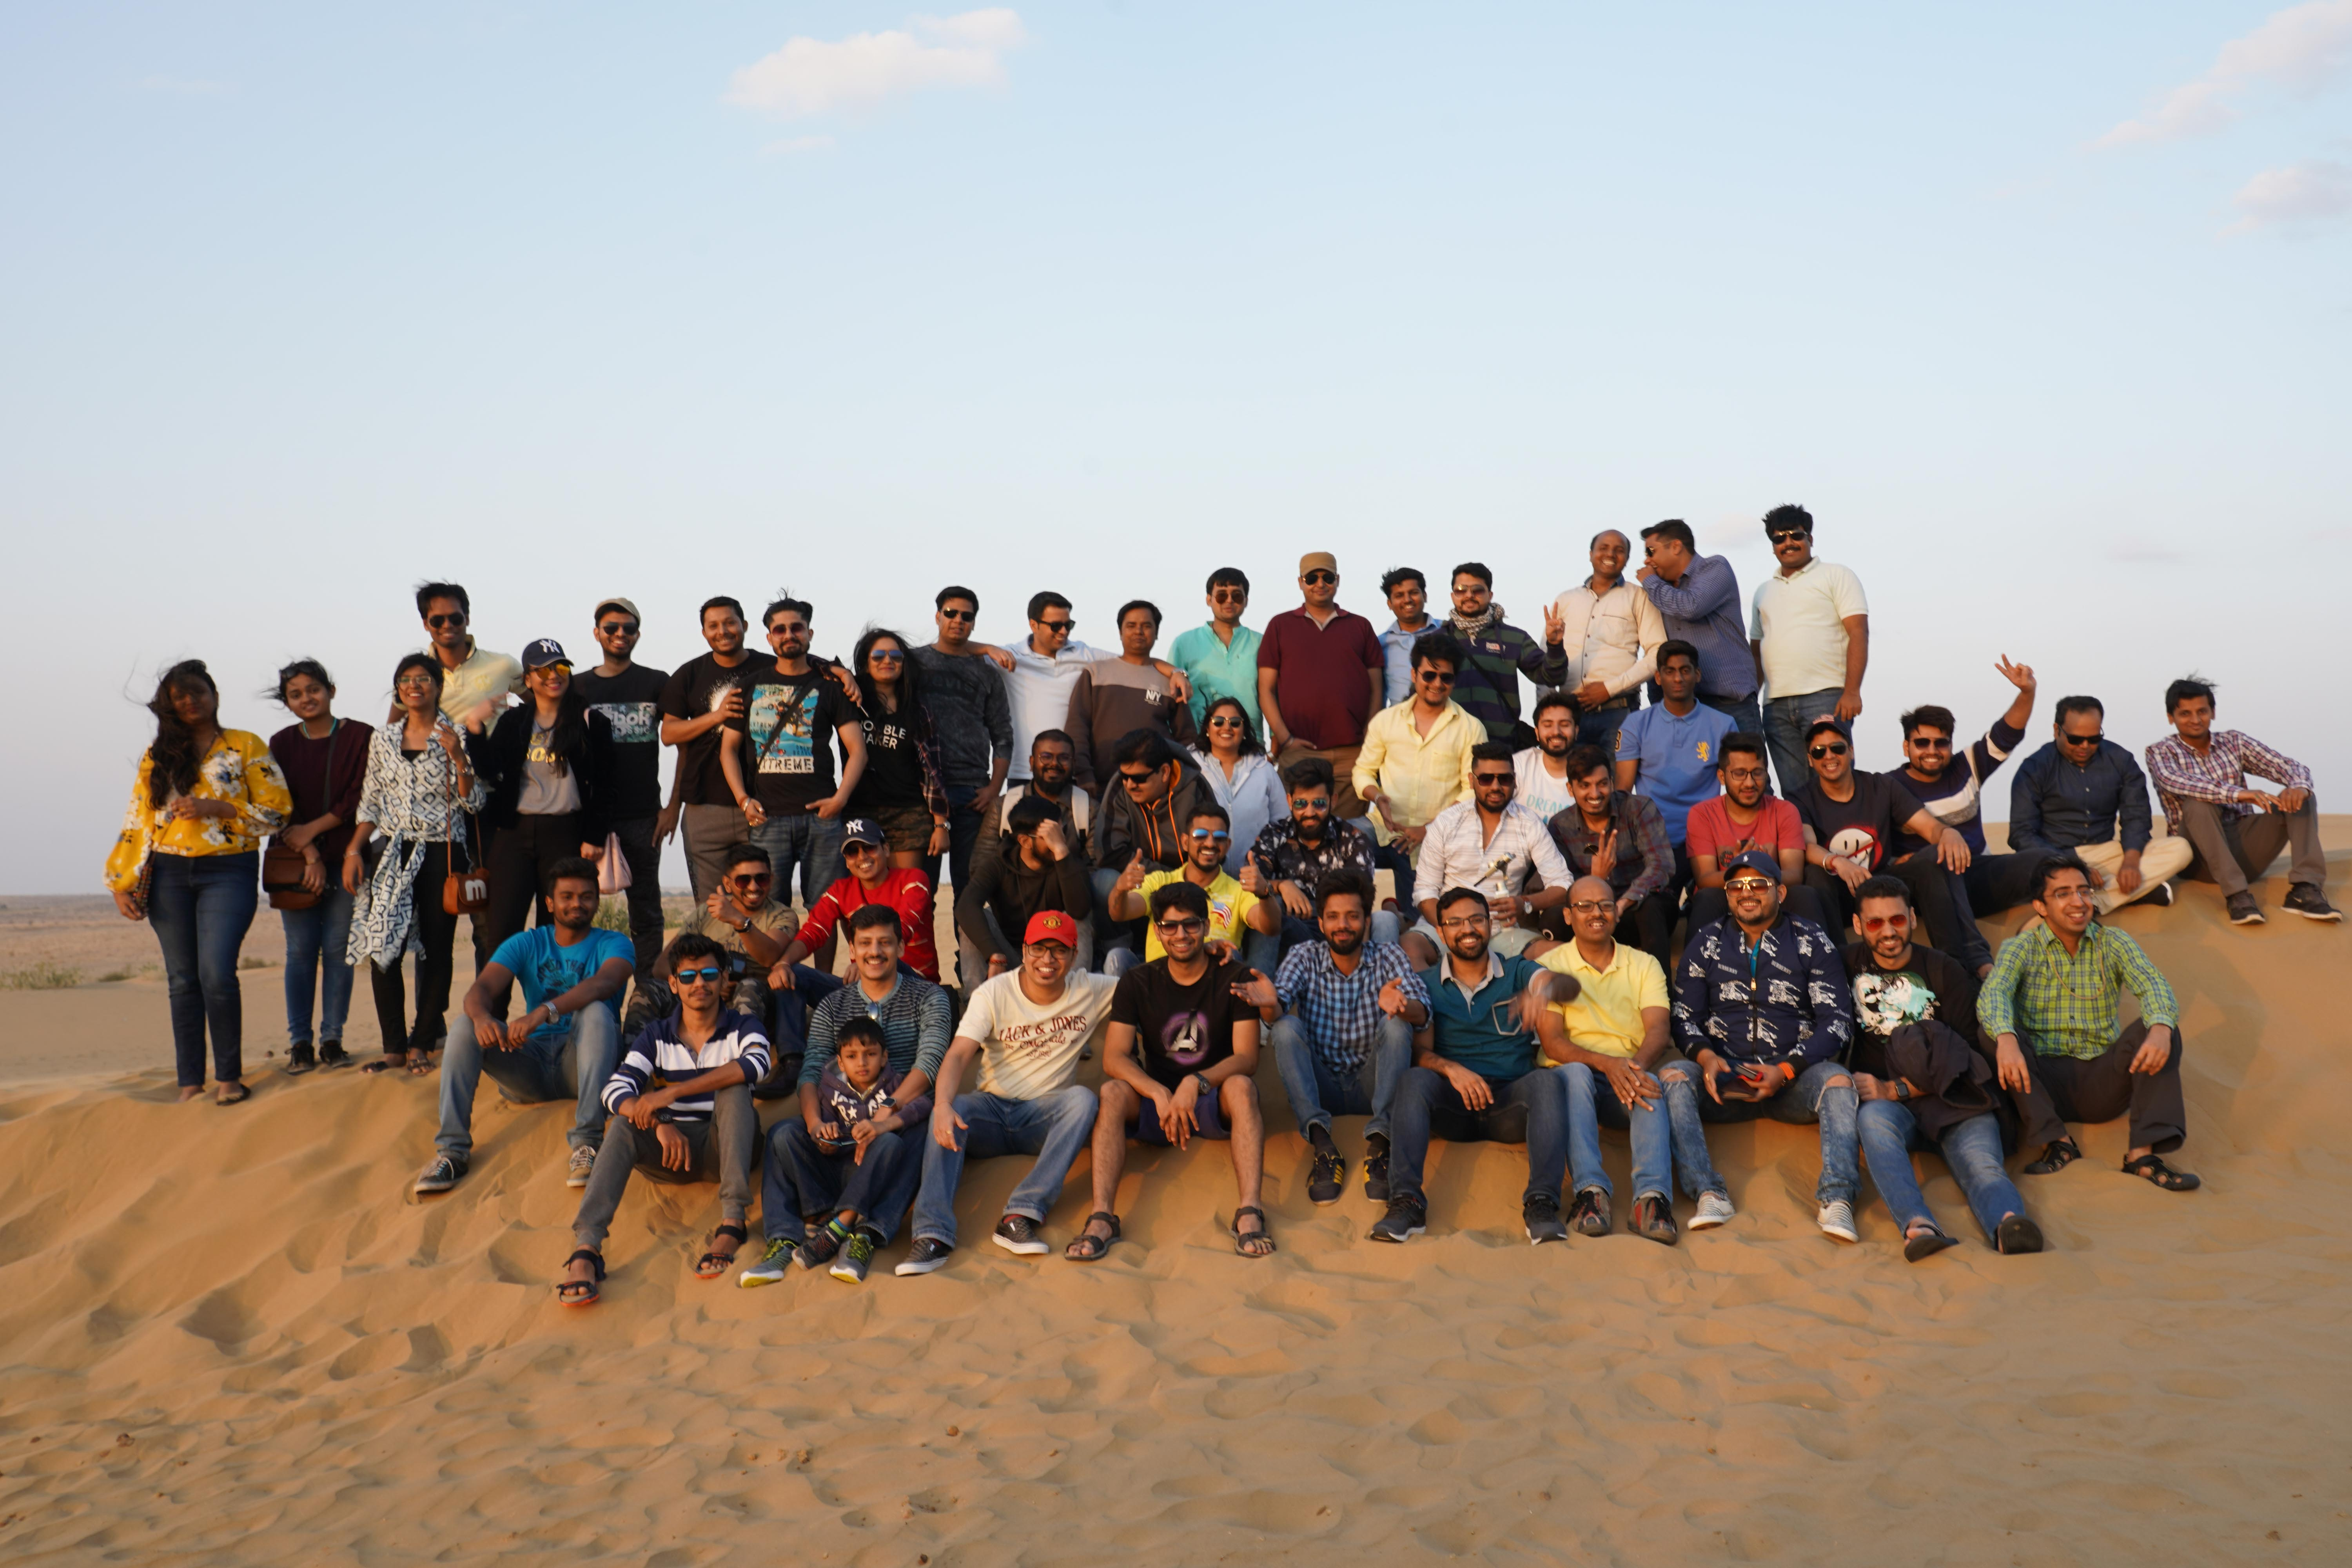 Corporate outing and team building justwravel